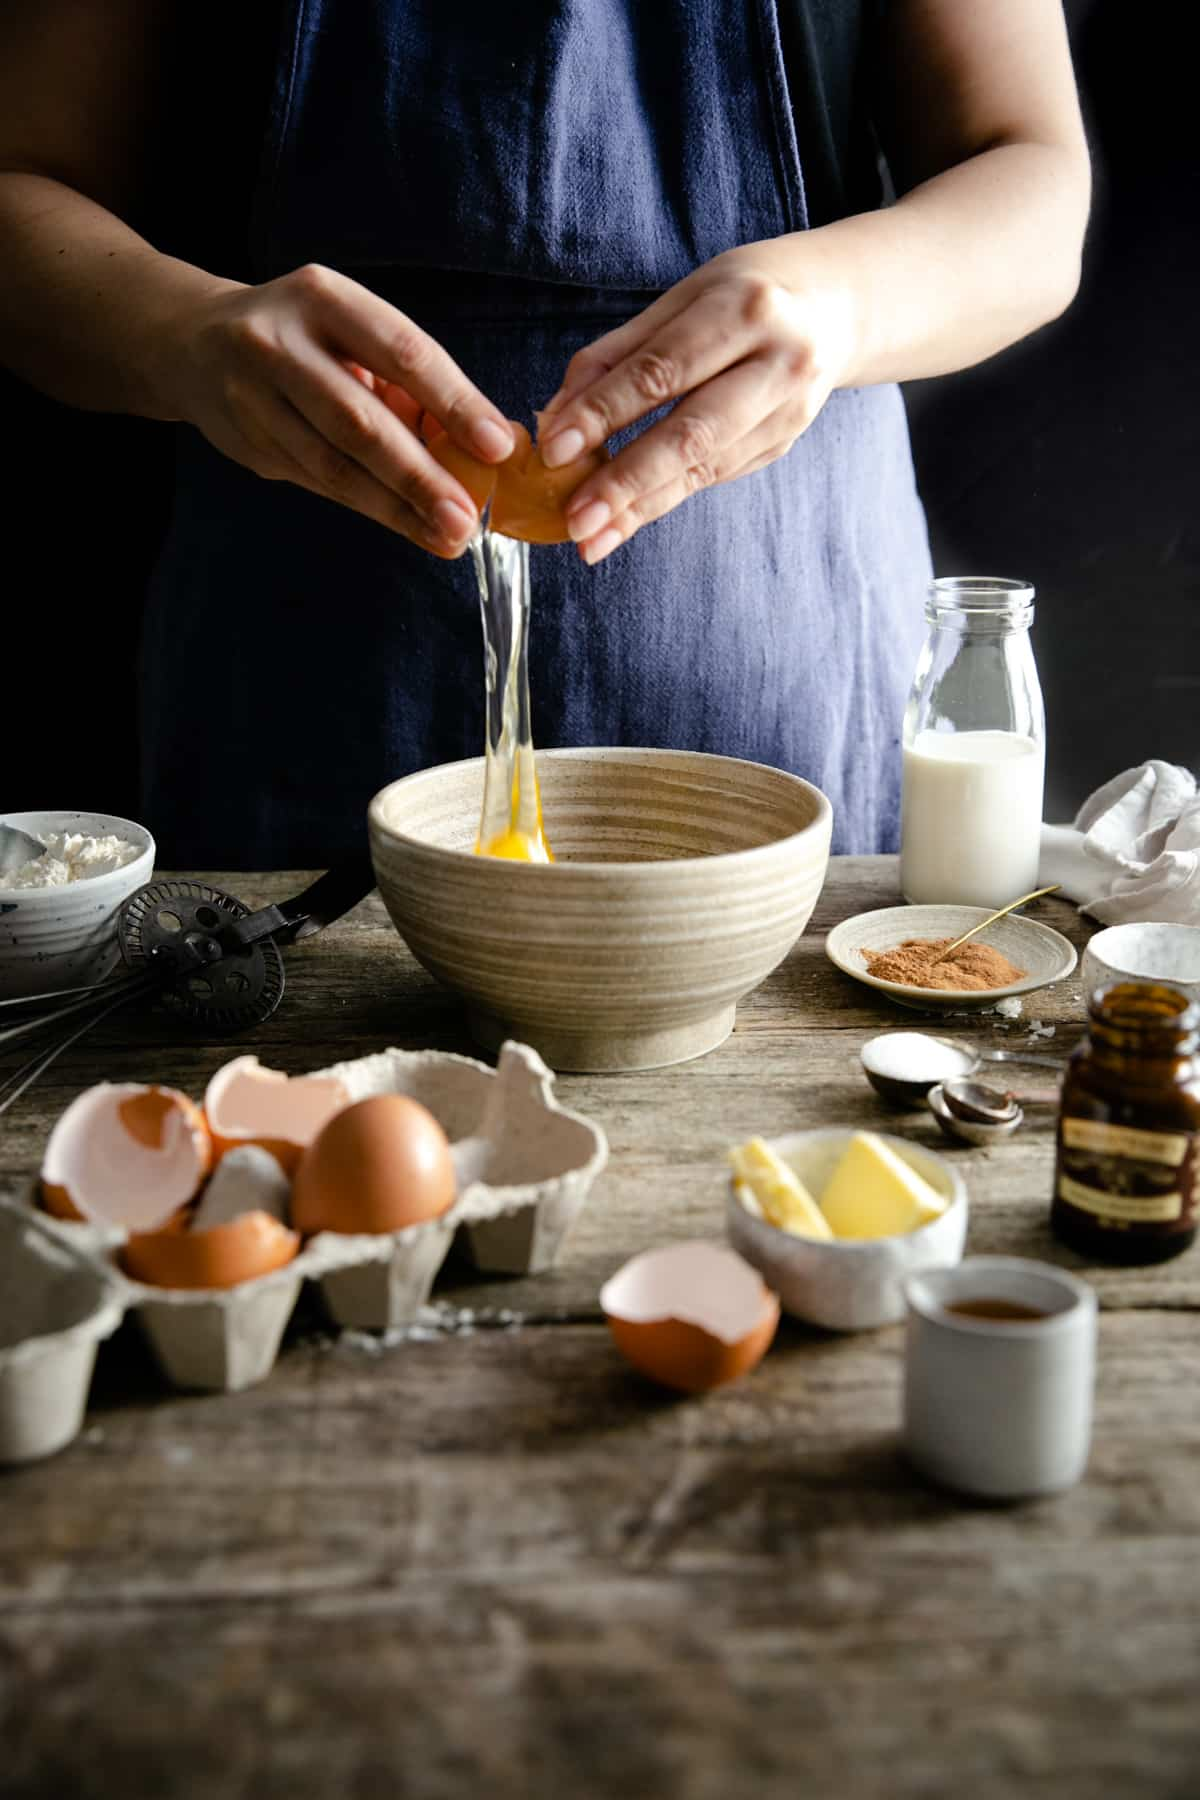 A person cracking an egg into a small bowl while preparing Dutch baby pancake